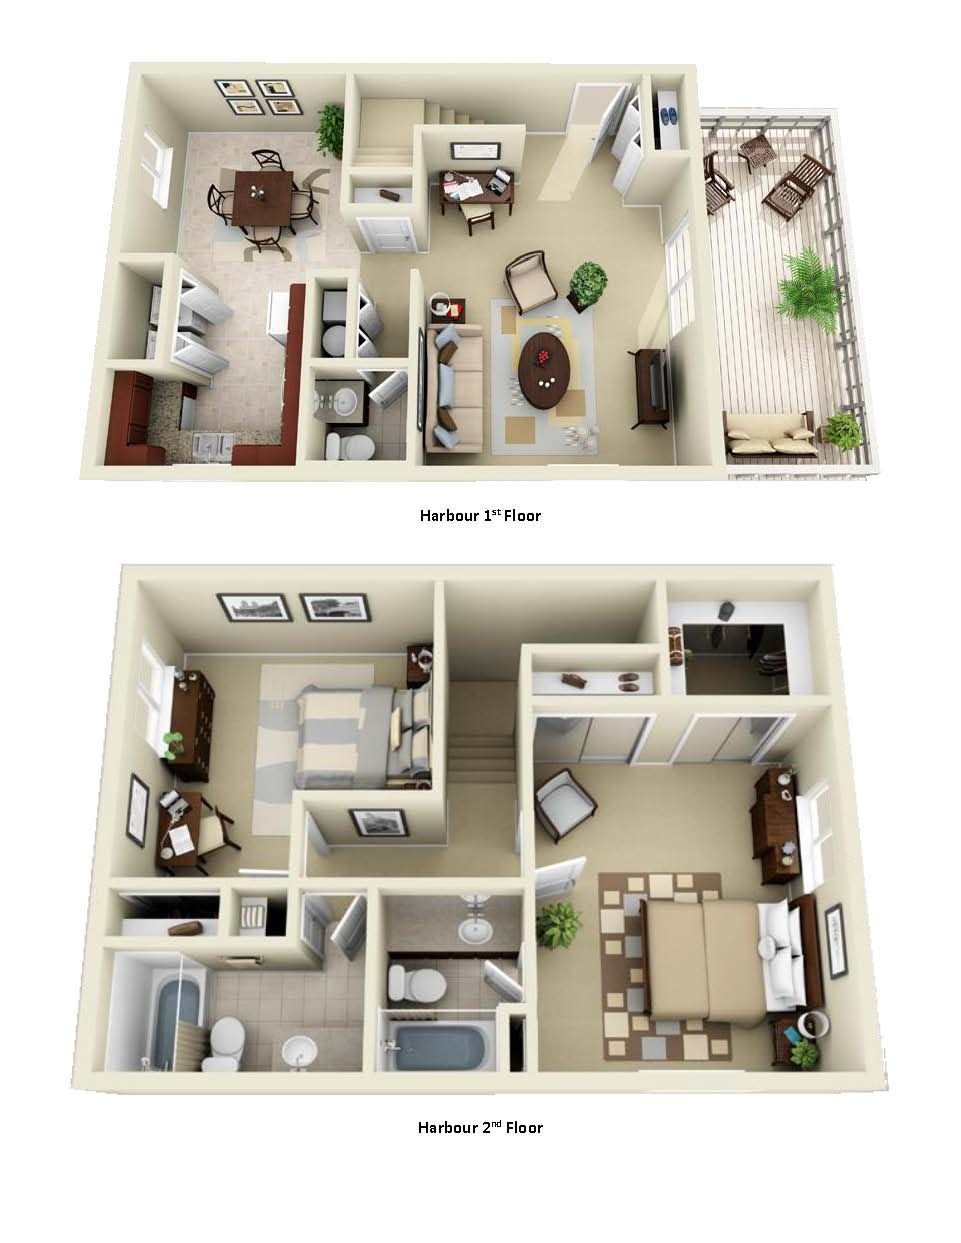 Luxury 1 2 And 3 Bedroom Apartments In Indianapolis In Indianapolis Indiana Apartment Steadfast House Layout Plans Apartment Plans Sims House